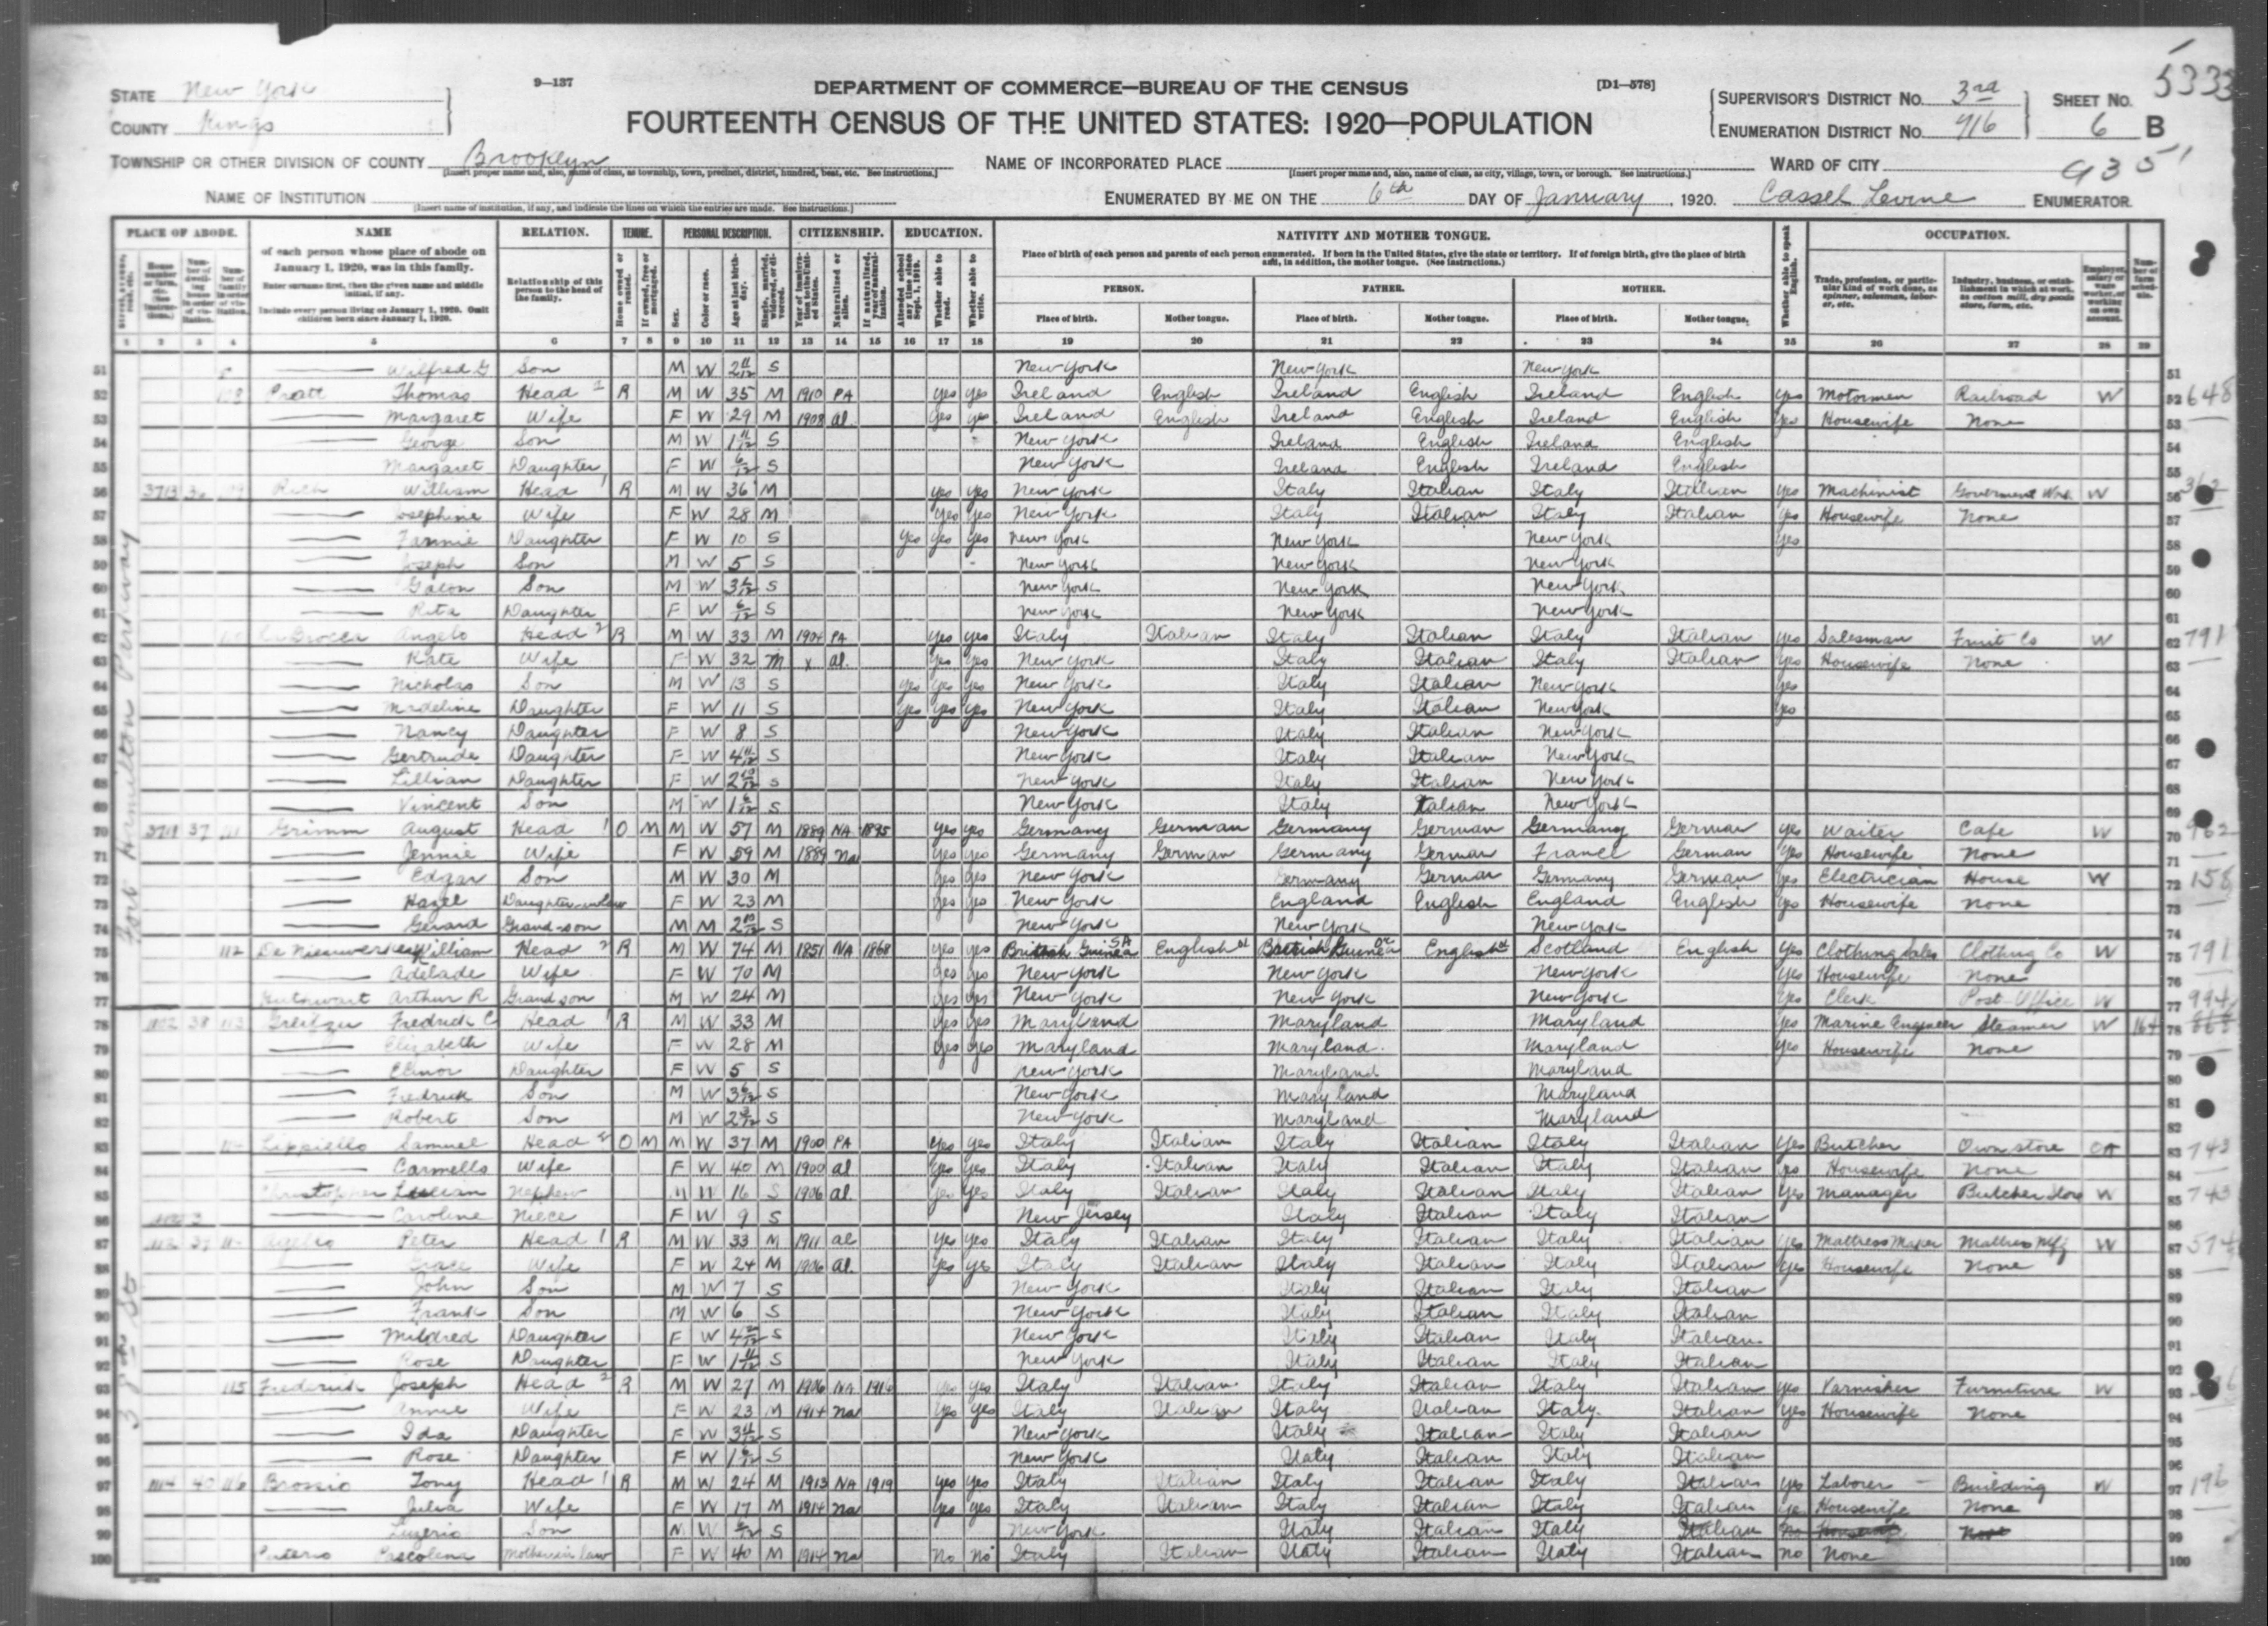 New York: KINGS County, Enumeration District 716, Sheet No. 6B